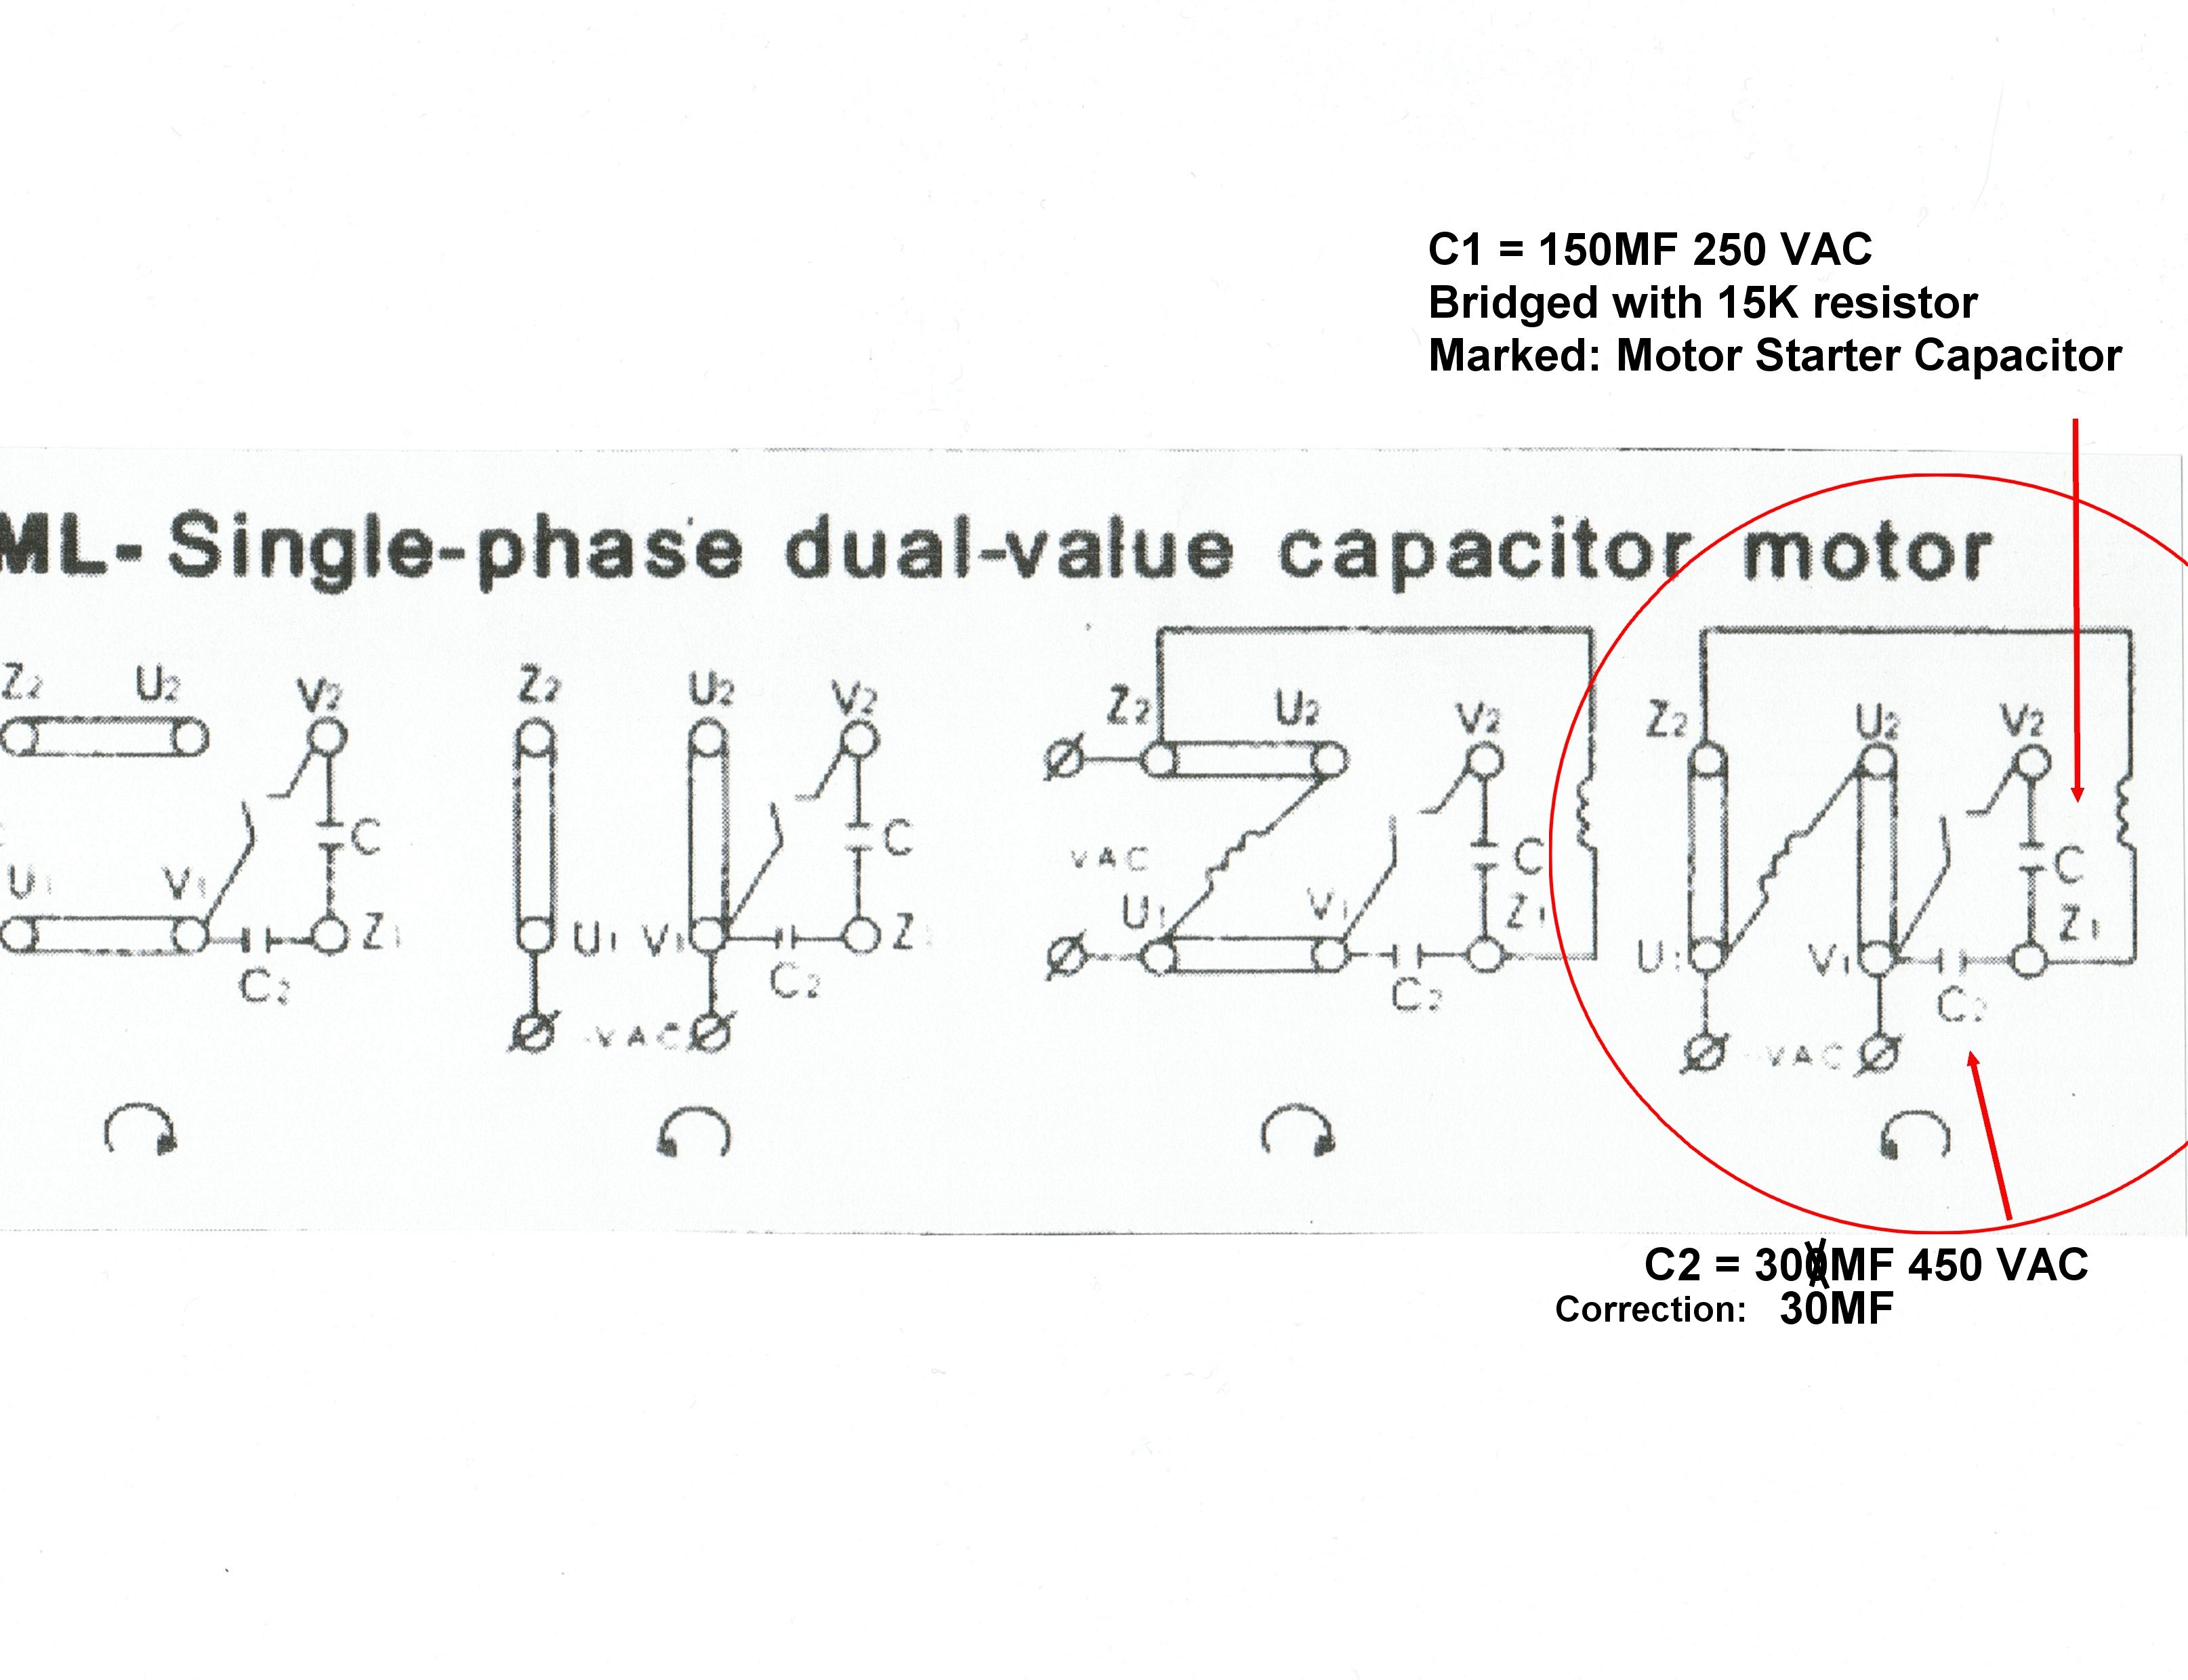 Saw_Motor03 220v 3 phase wiring diagram up a detailed schematics diagram